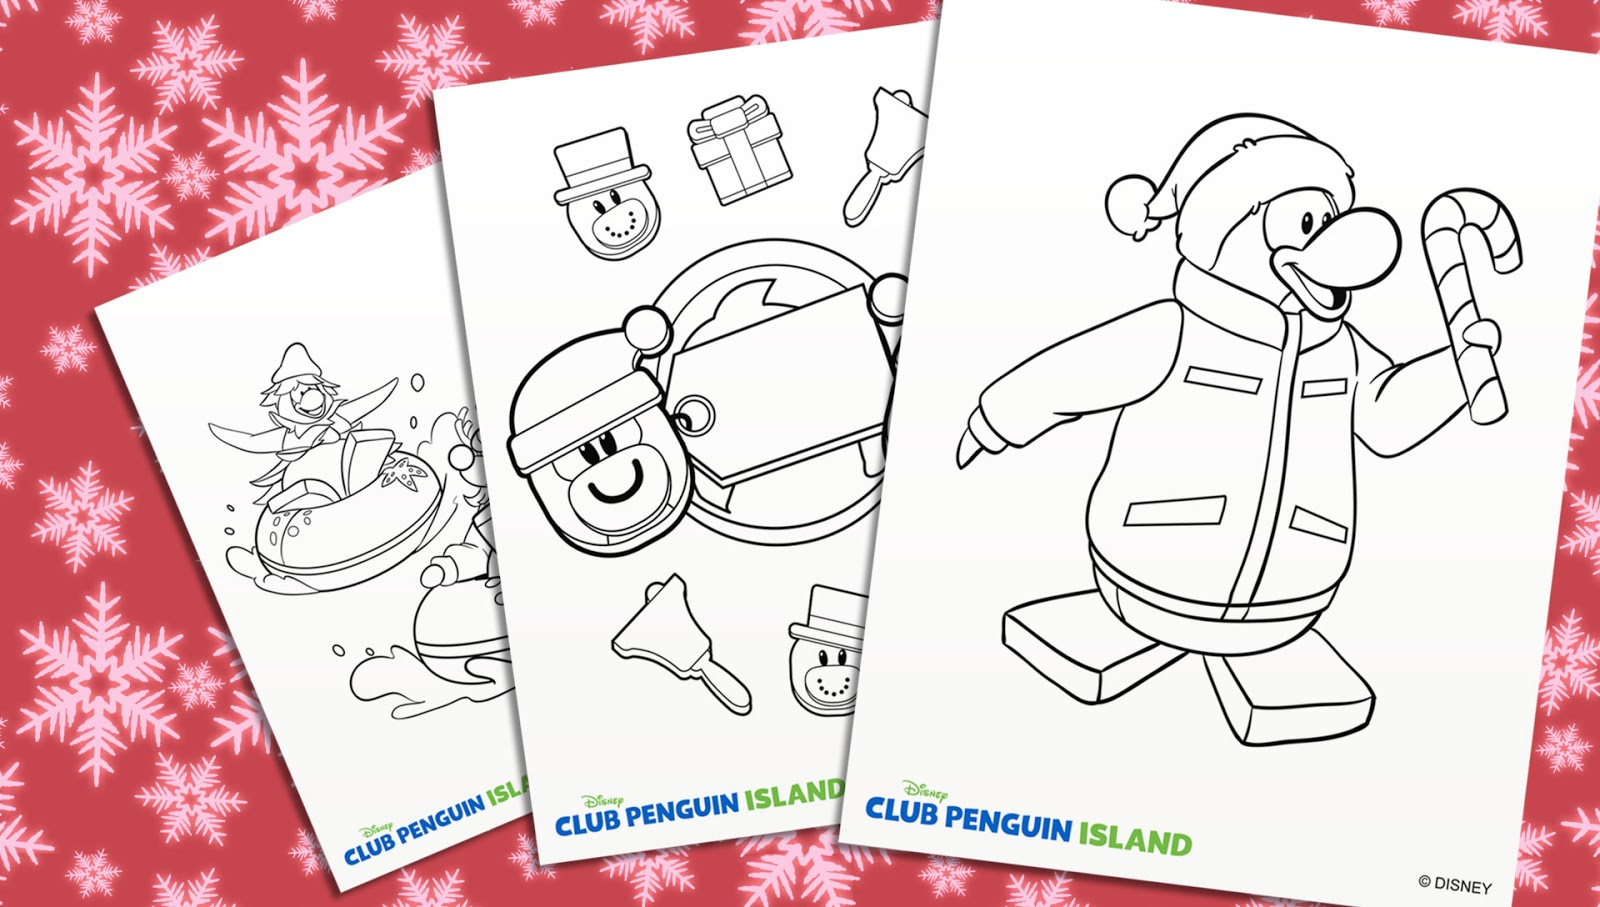 Holiday Coloring Pages | Club Penguin Island Guides, News, Stories ...